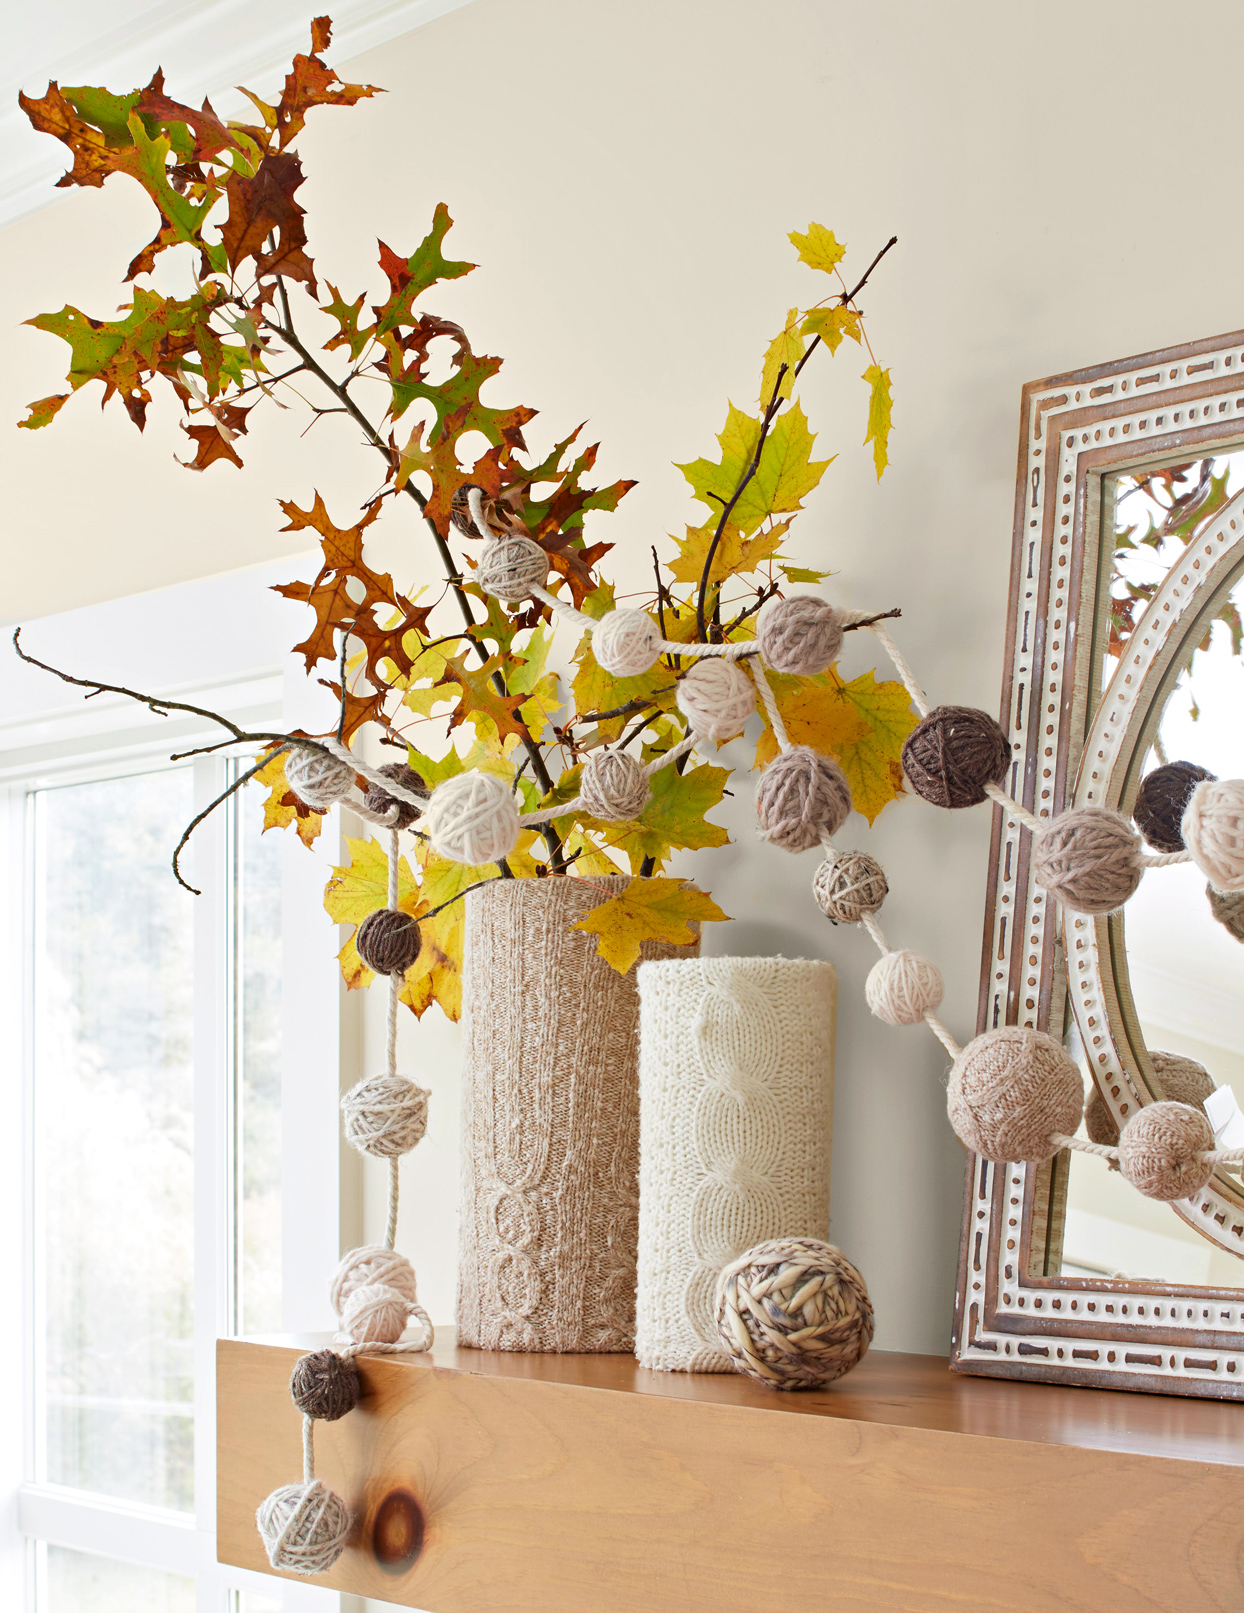 vases with knit sweater fabric